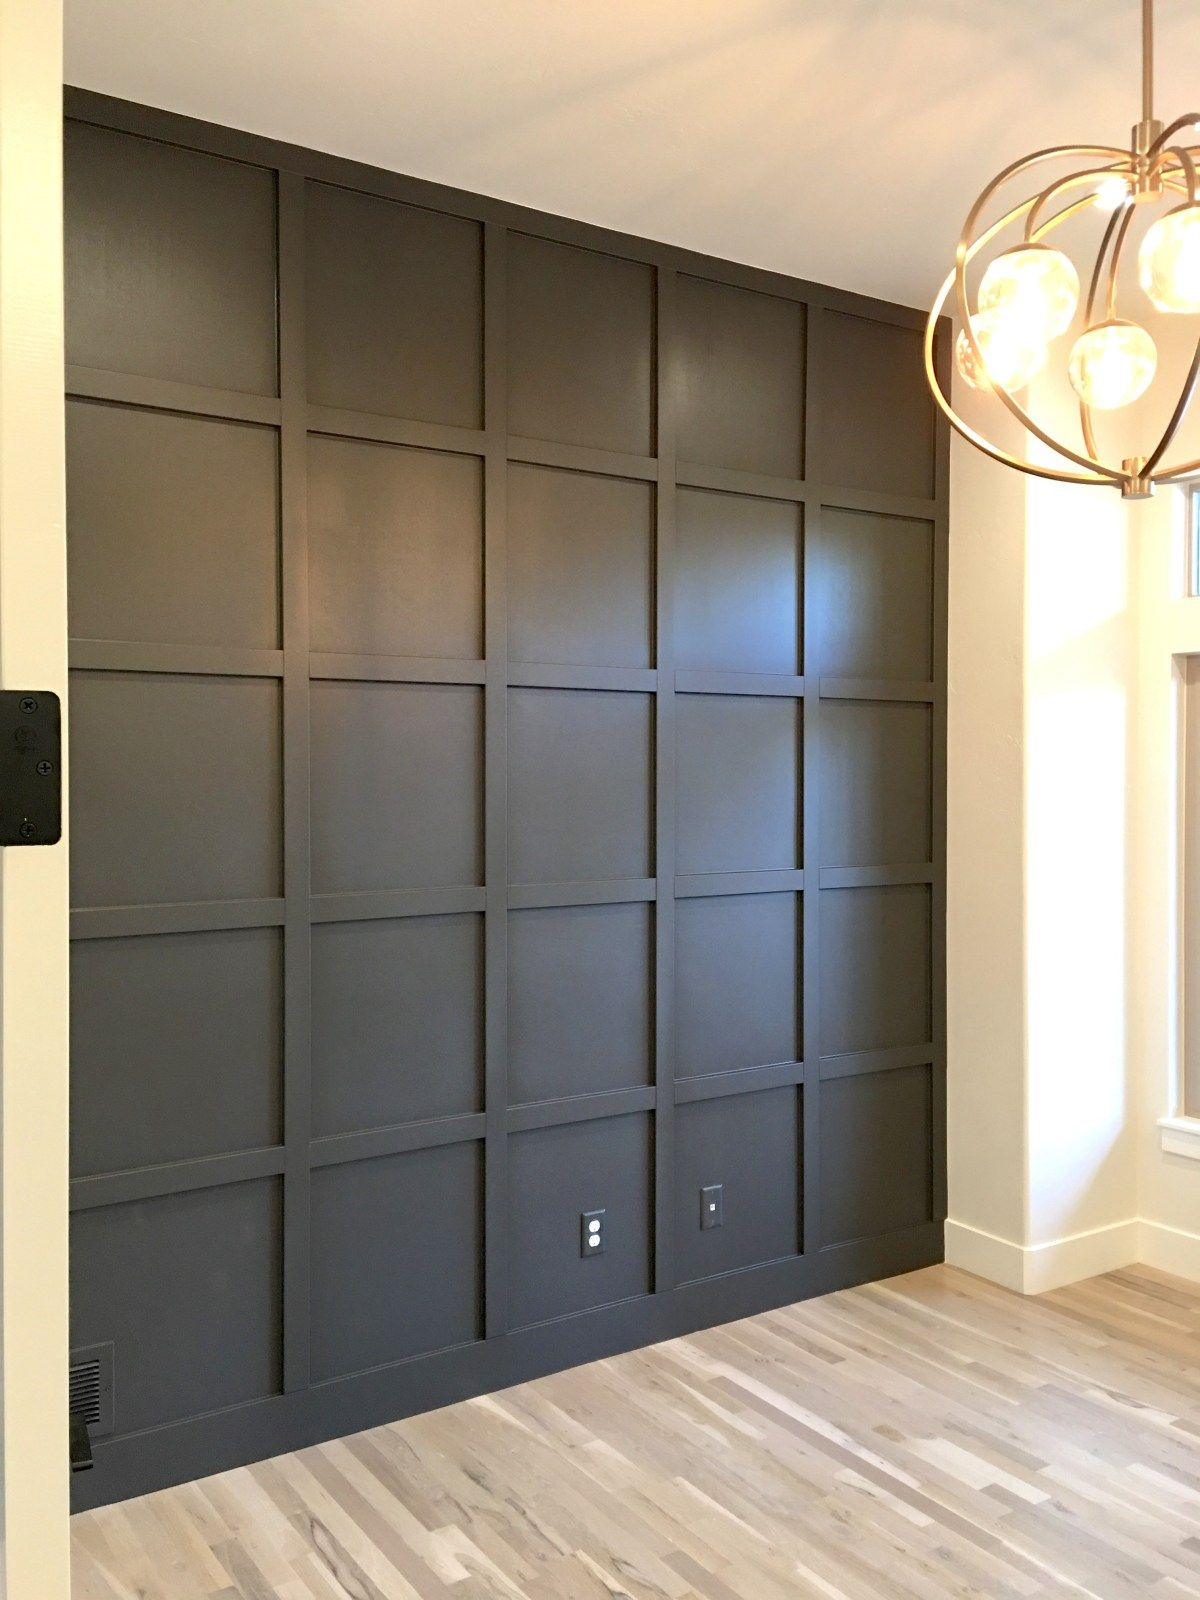 Tutorial For Creating A Perfect Grid Wall Welsh Design Studio Wall Paneling Diy Interior Wall Design Wall Panel Design